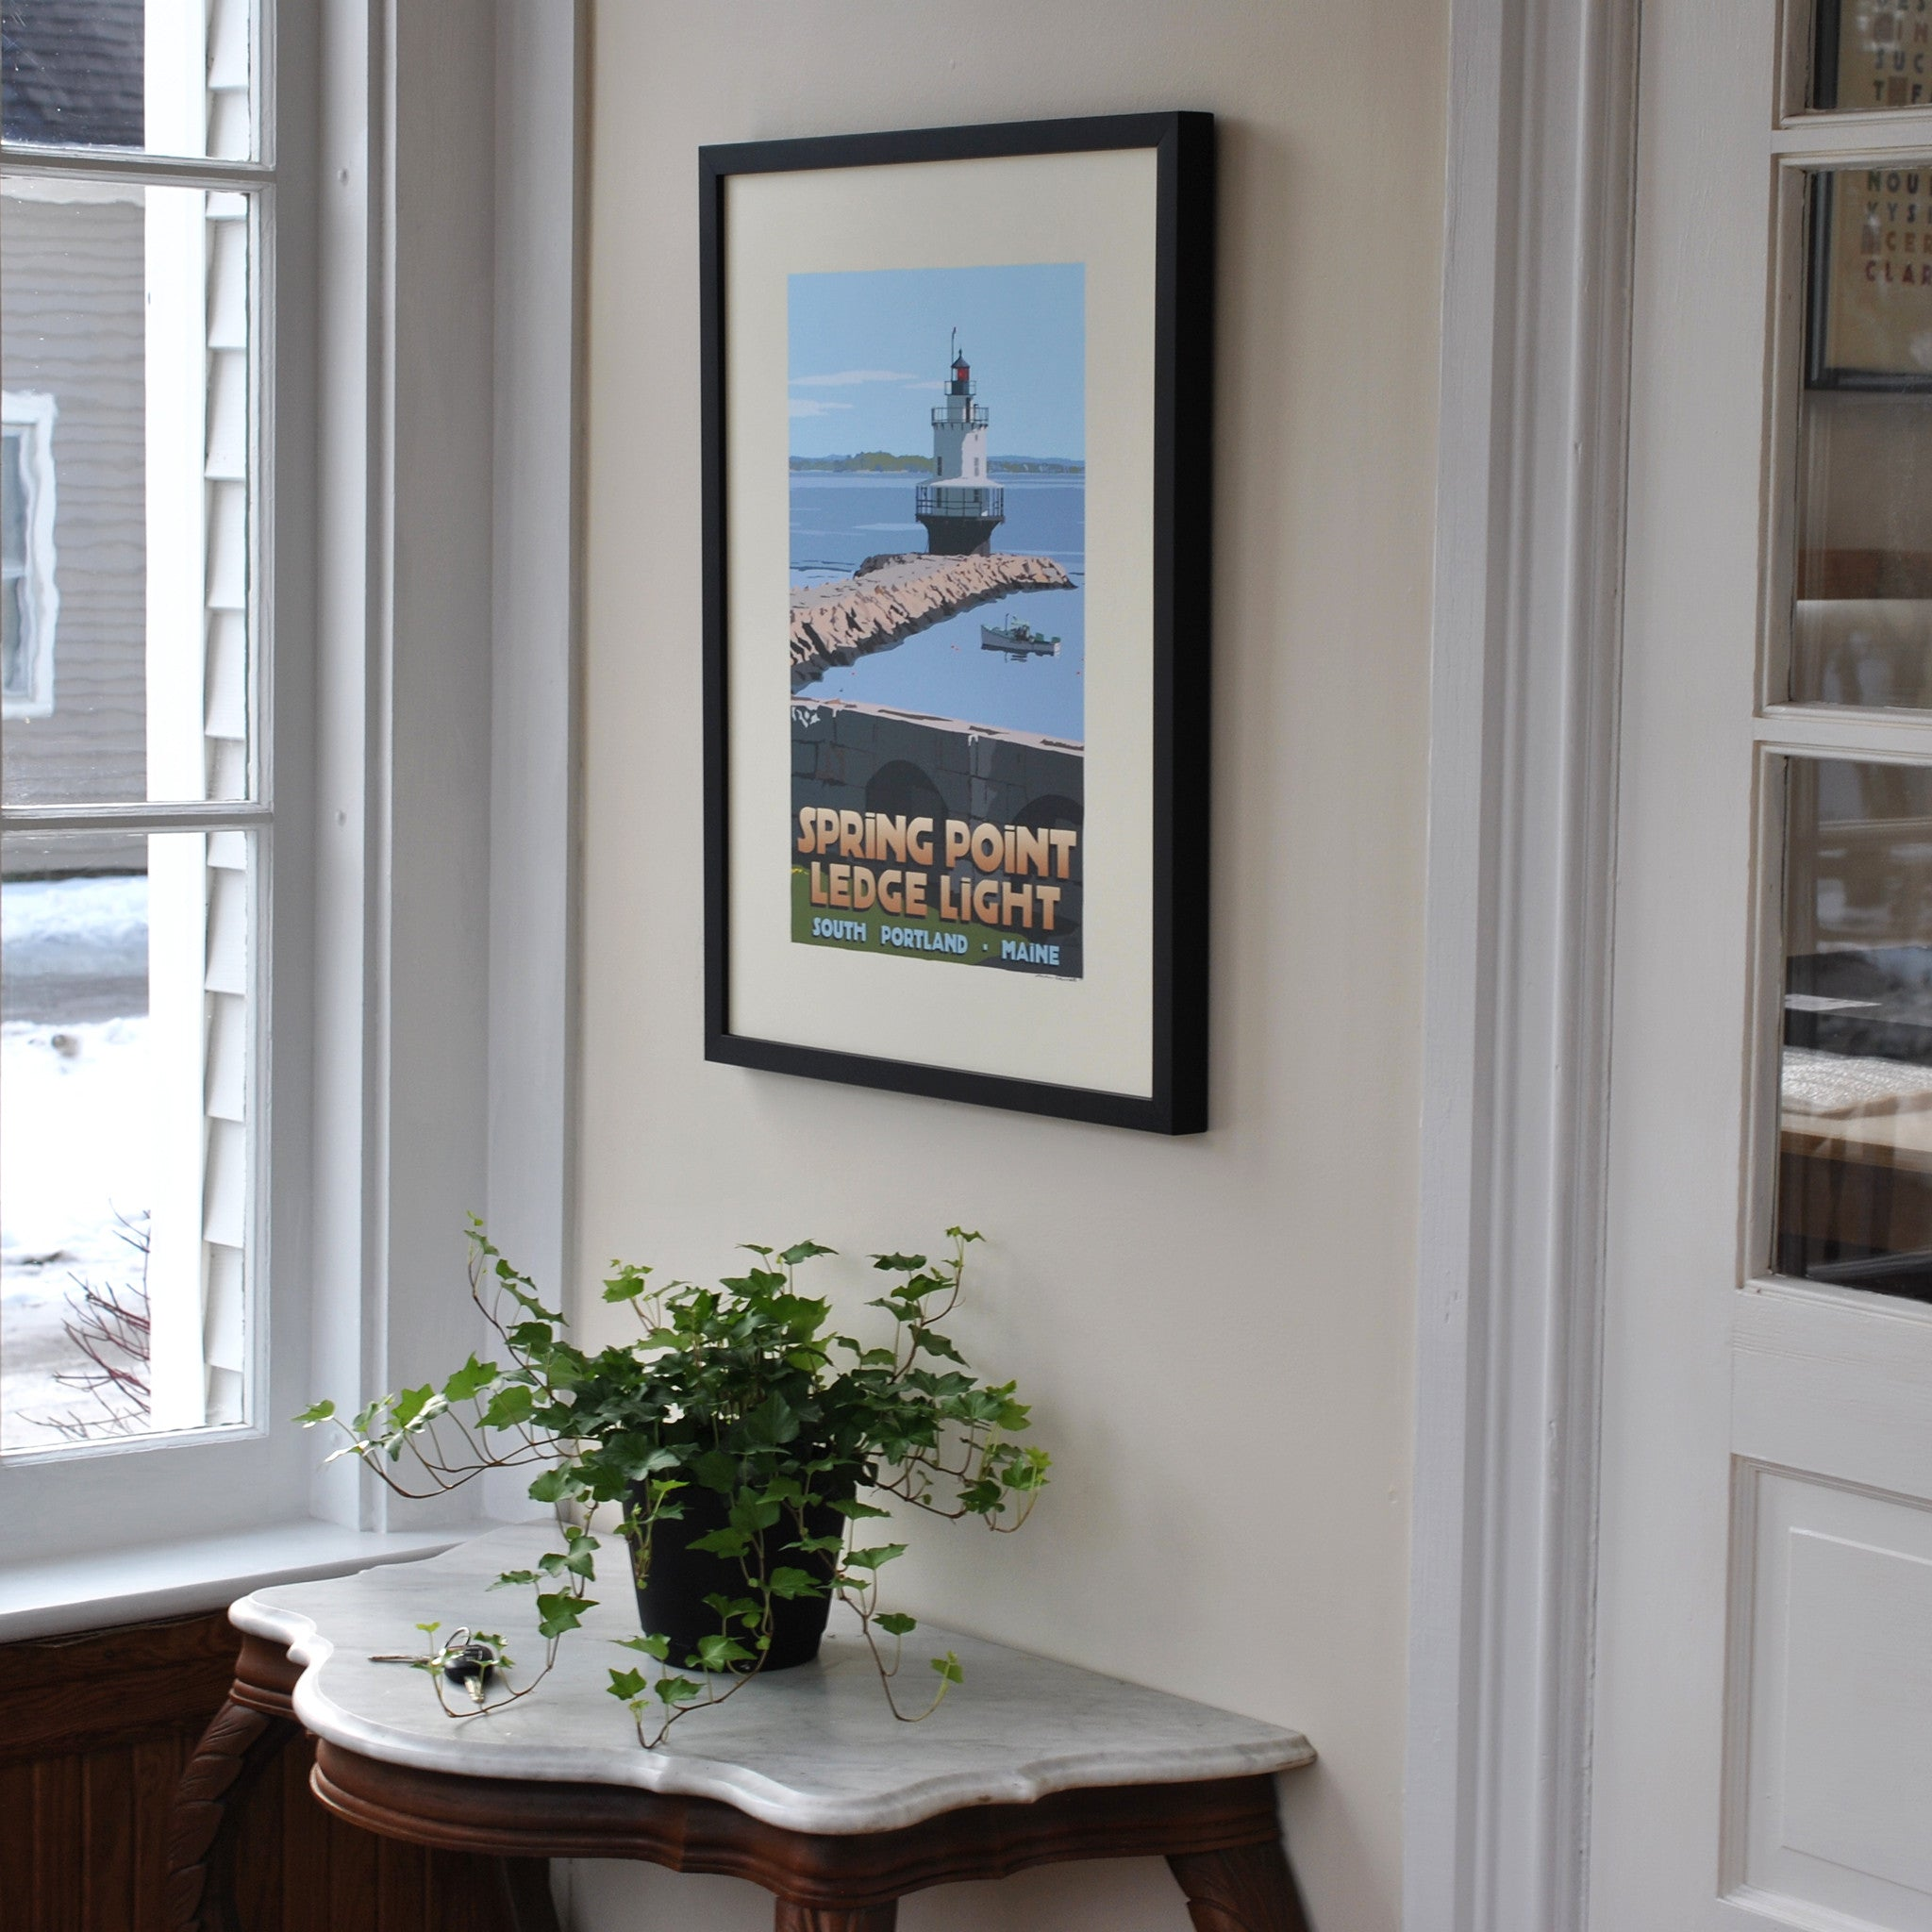 "Spring Point Ledge Light Art Print 18"" x 24"" Framed Travel Poster - Maine"